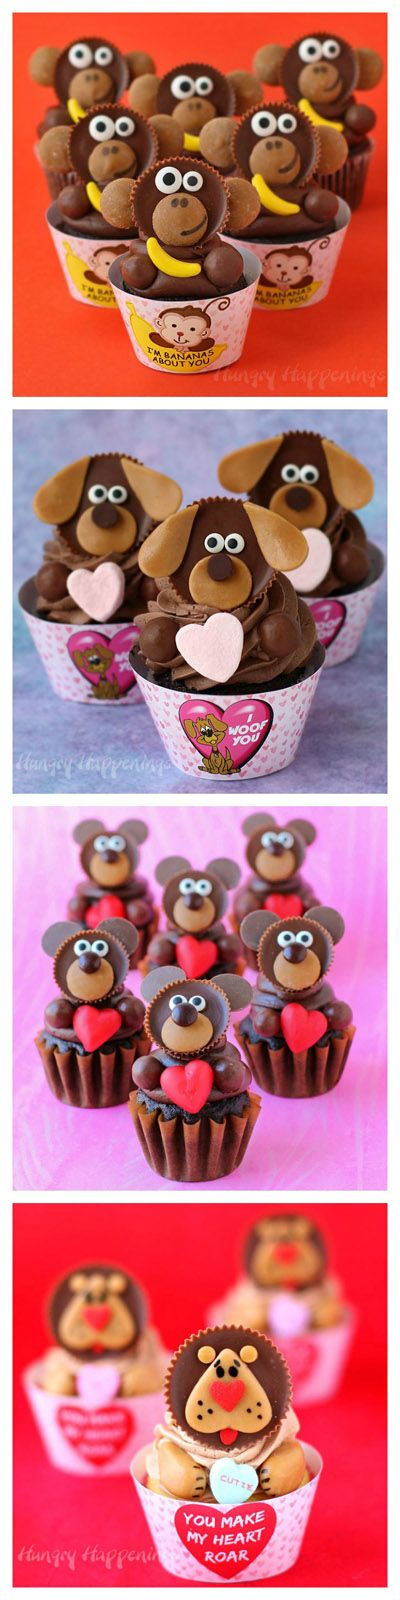 valentine's day reese's candy